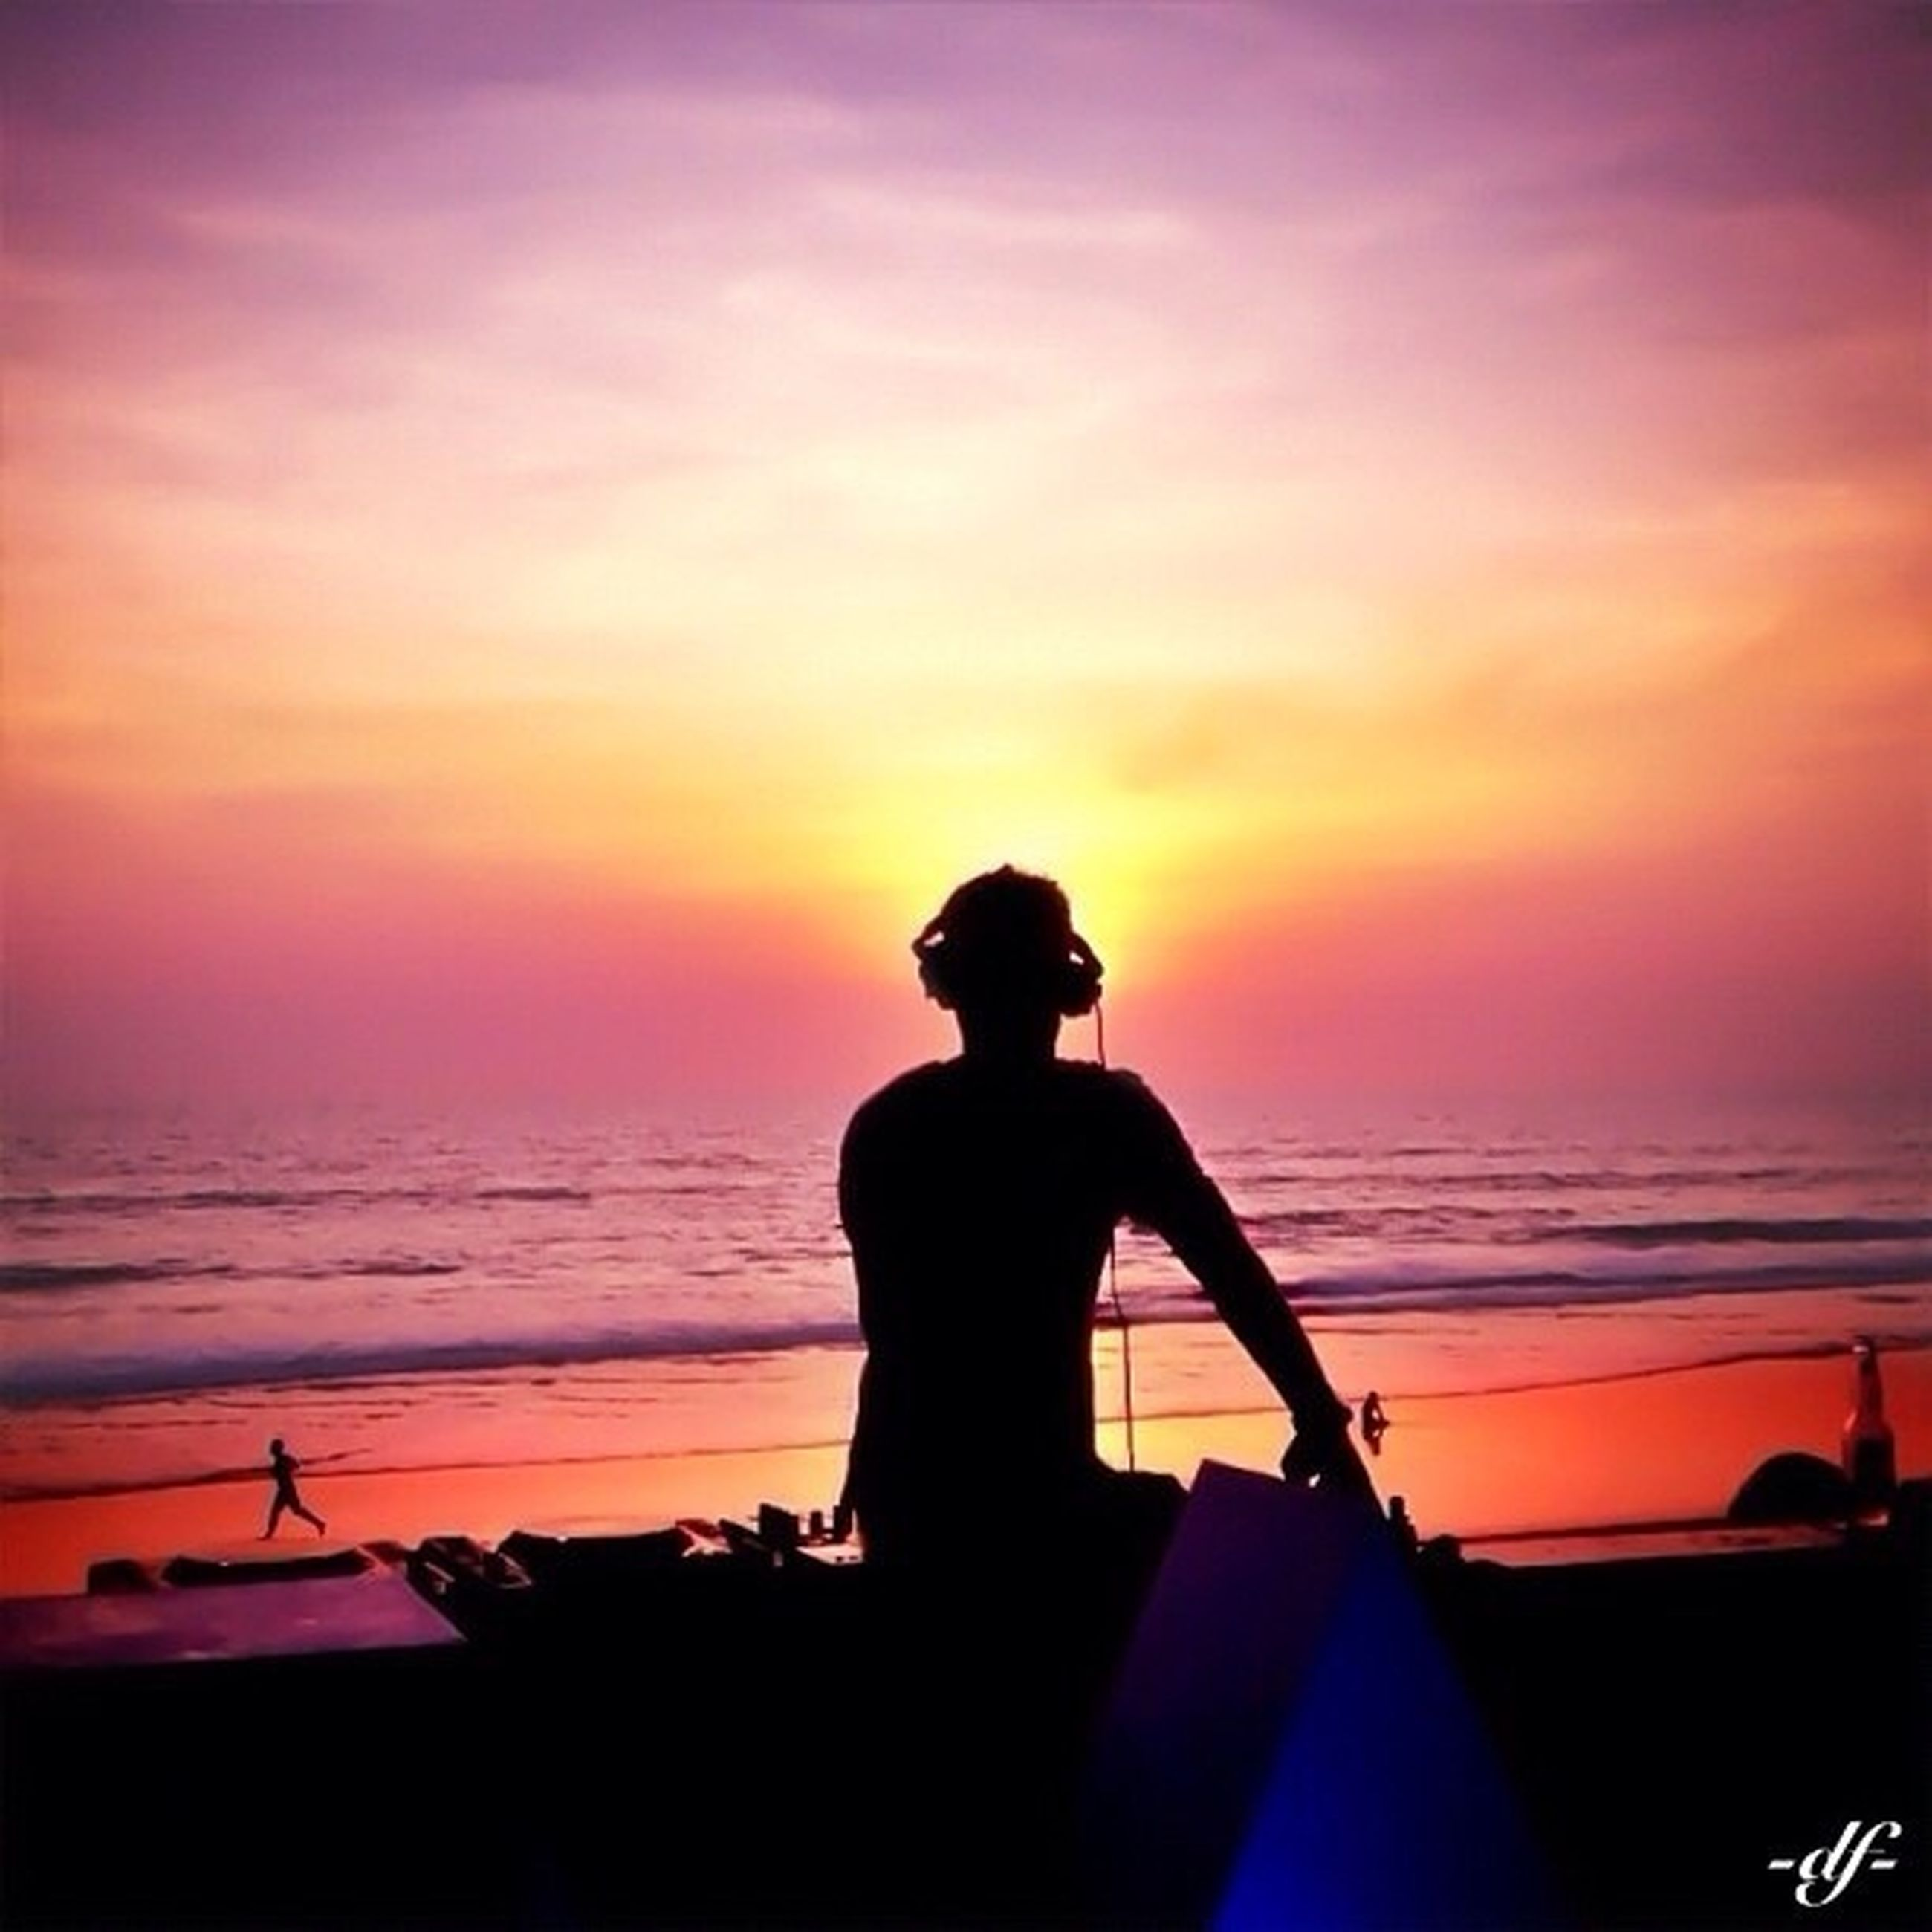 sunset, sea, horizon over water, silhouette, water, orange color, sky, beach, lifestyles, leisure activity, scenics, beauty in nature, shore, standing, idyllic, men, tranquility, tranquil scene